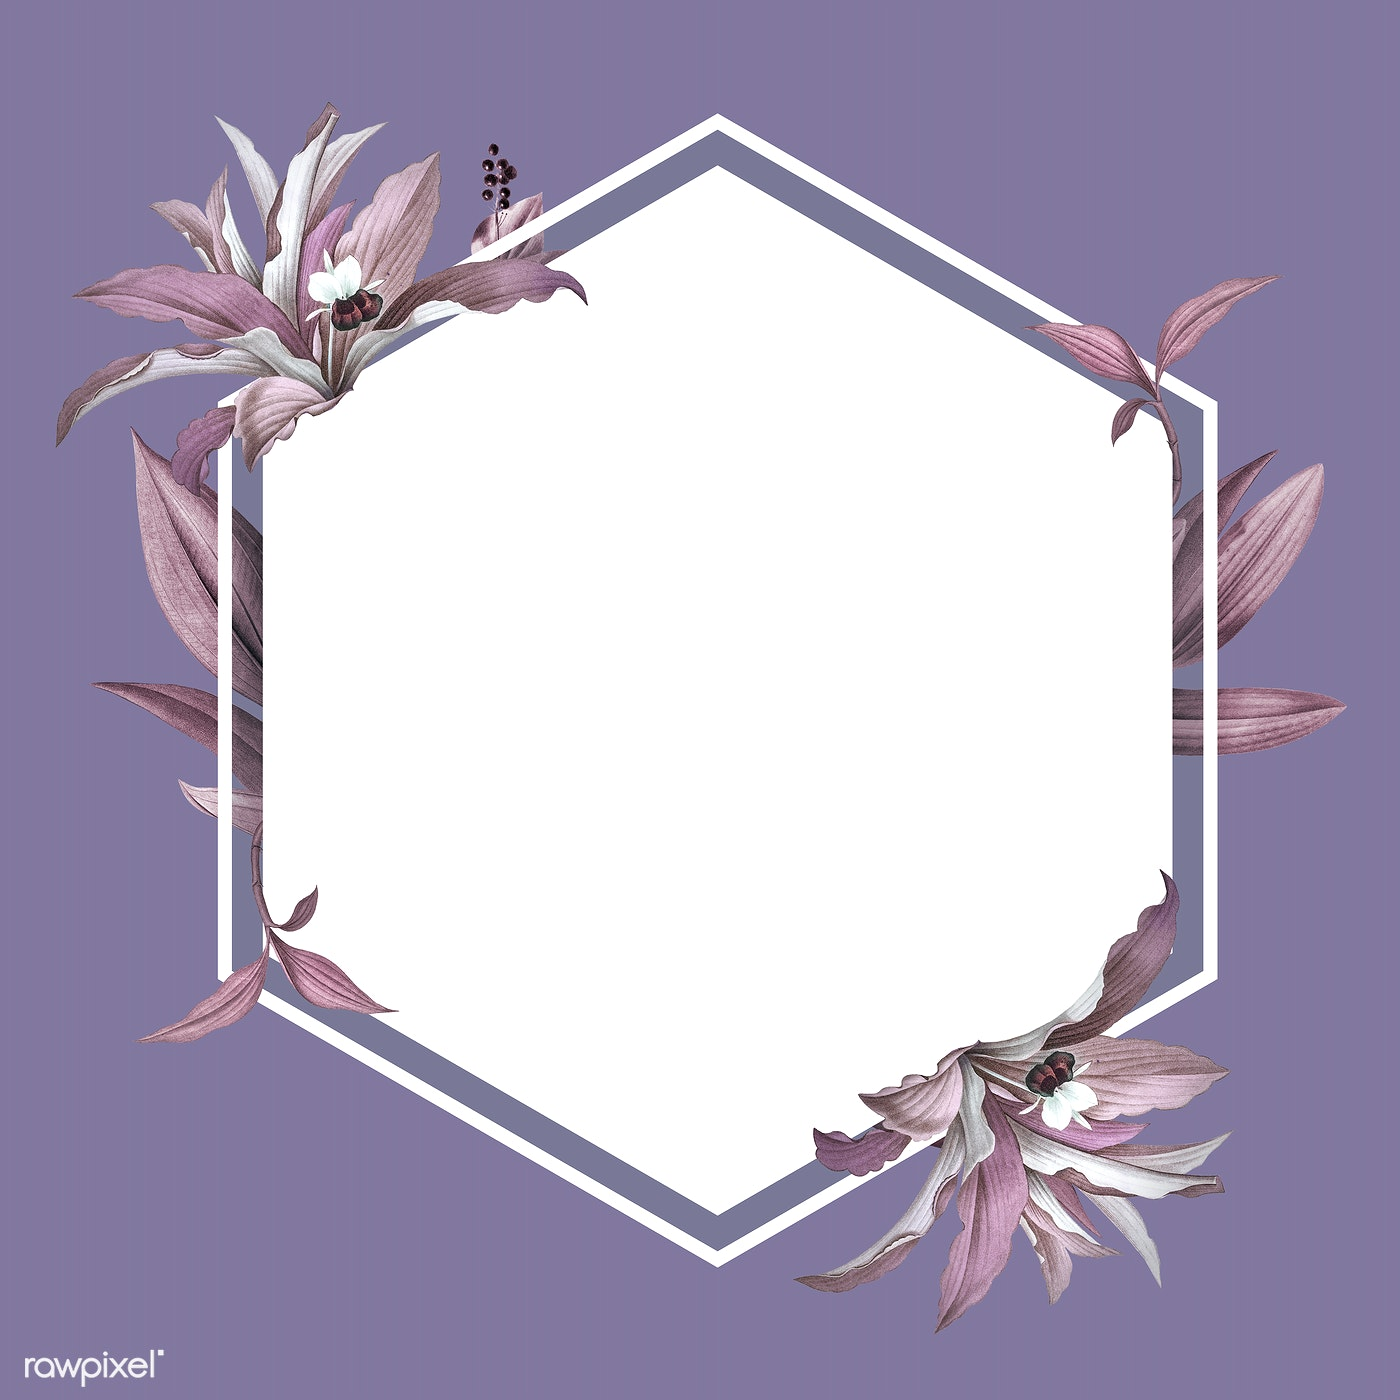 Empty Wedding Frame With Purple Leaves Design Royalty Free Stock